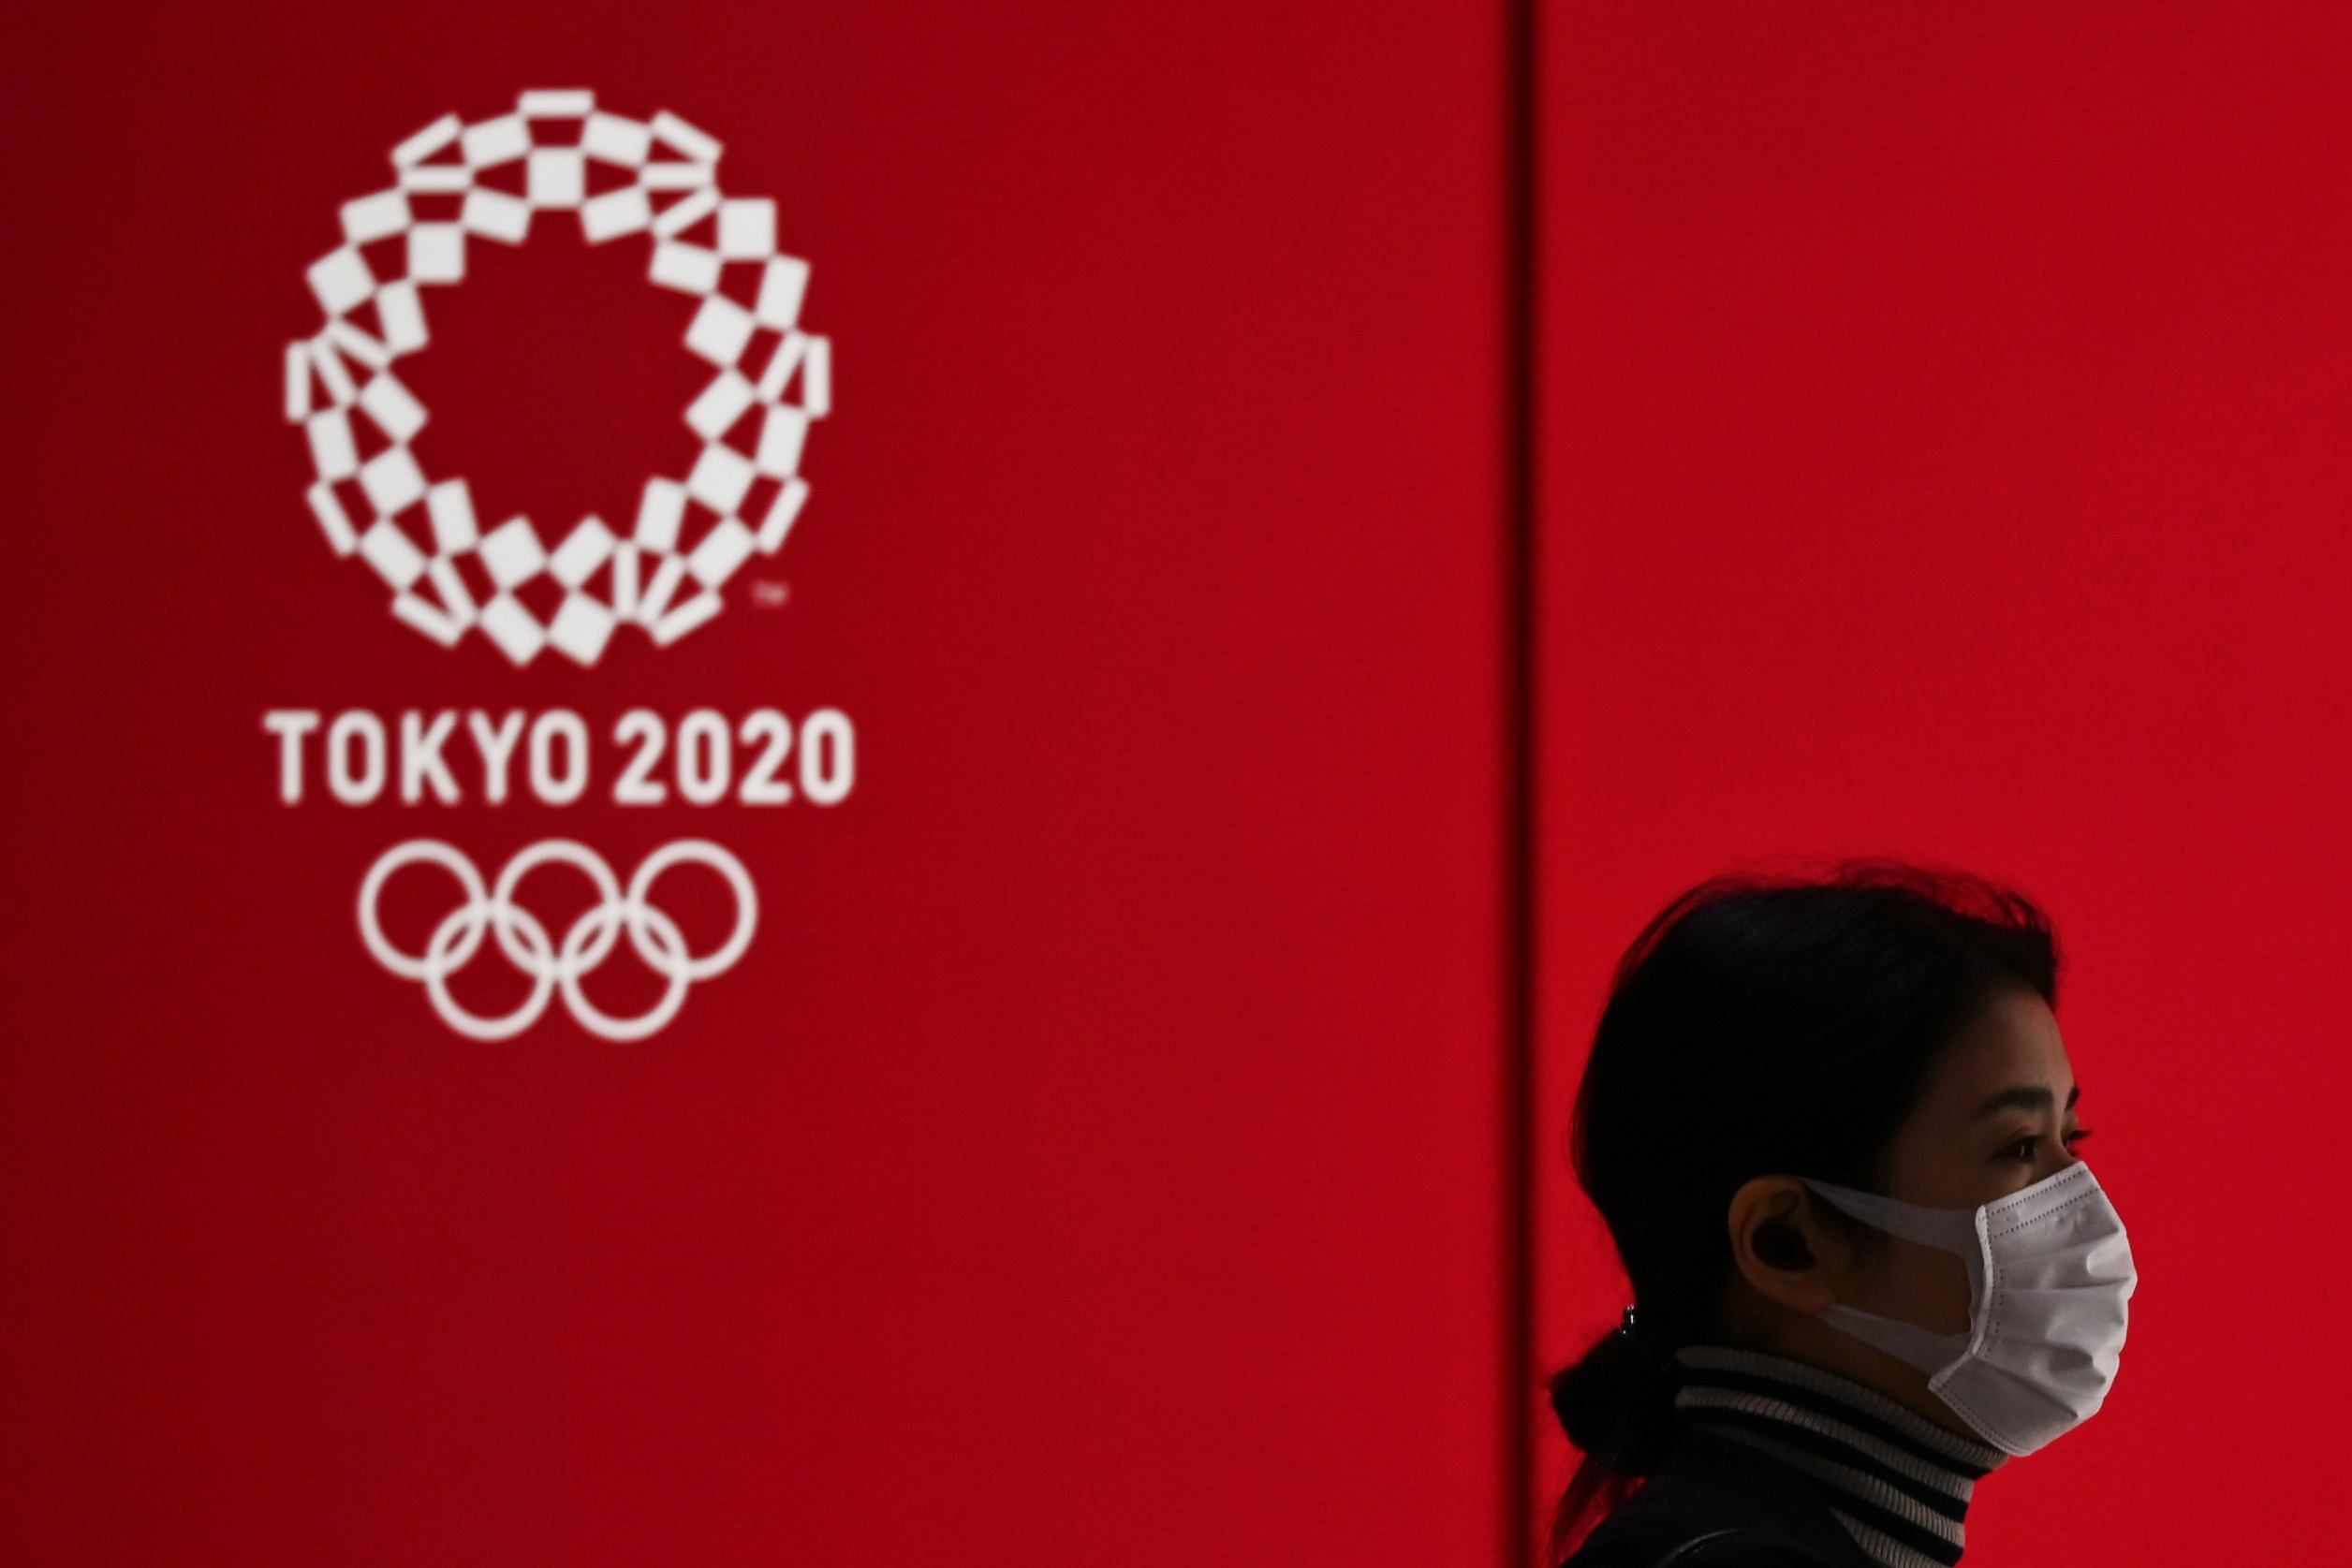 TOPSHOT - A woman in a face mask walks past a display showing the Tokyo 2020 Olympic Games logo in Tokyo on March 24, 2020. (Photo by CHARLY TRIBALLEAU / AFP) (Photo by CHARLY TRIBALLEAU/AFP via Getty Images)